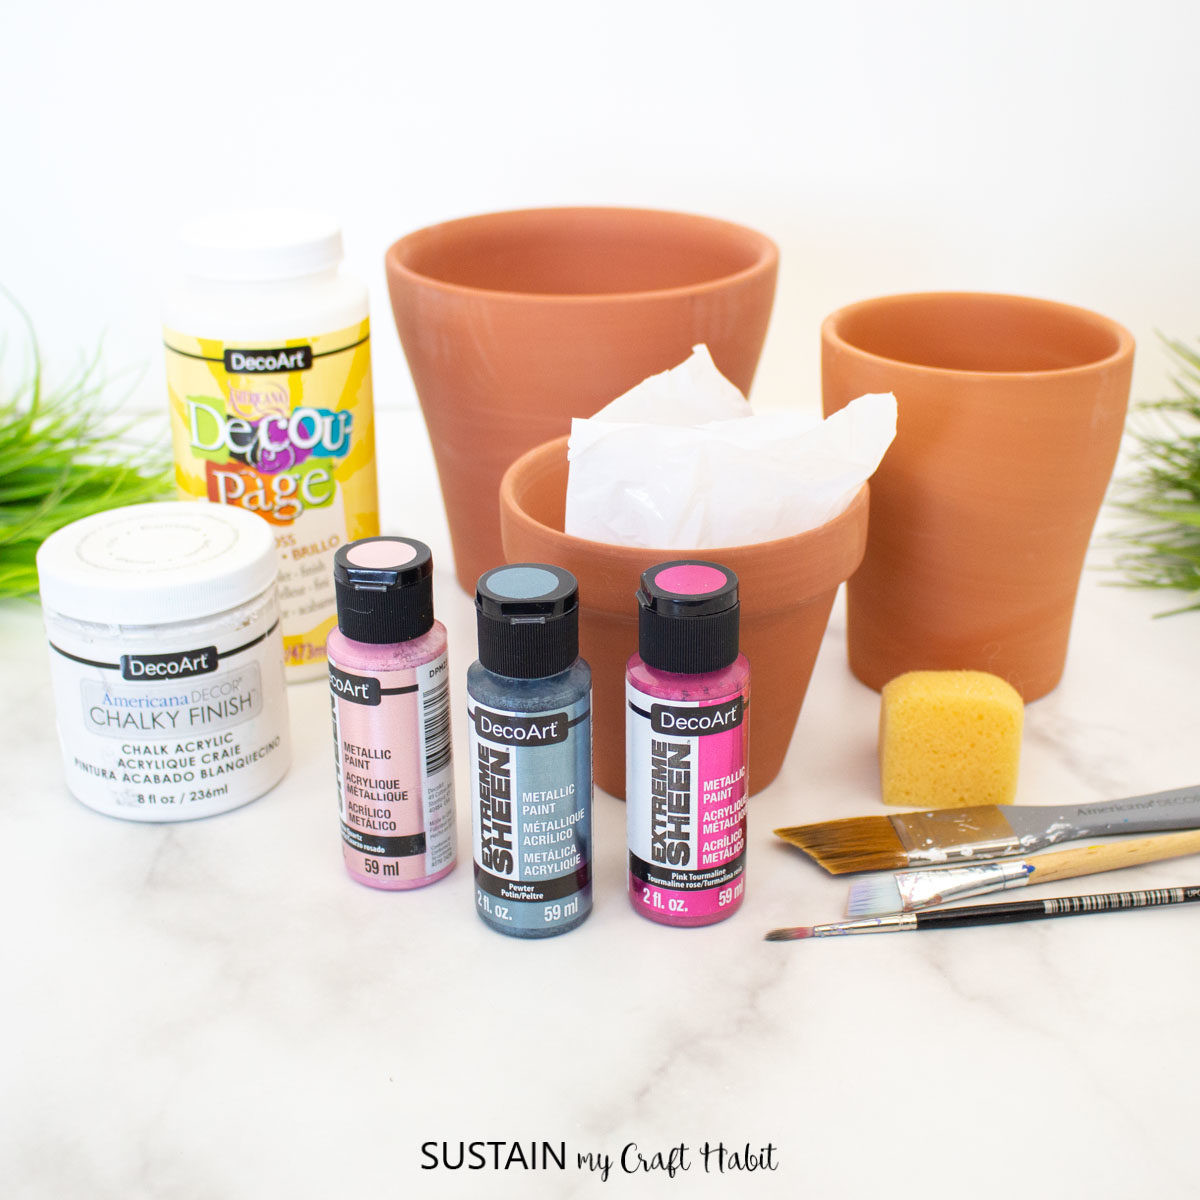 Materials needed to make painted marble effect terracotta pots including clay pots, paint, and paintbrushes.